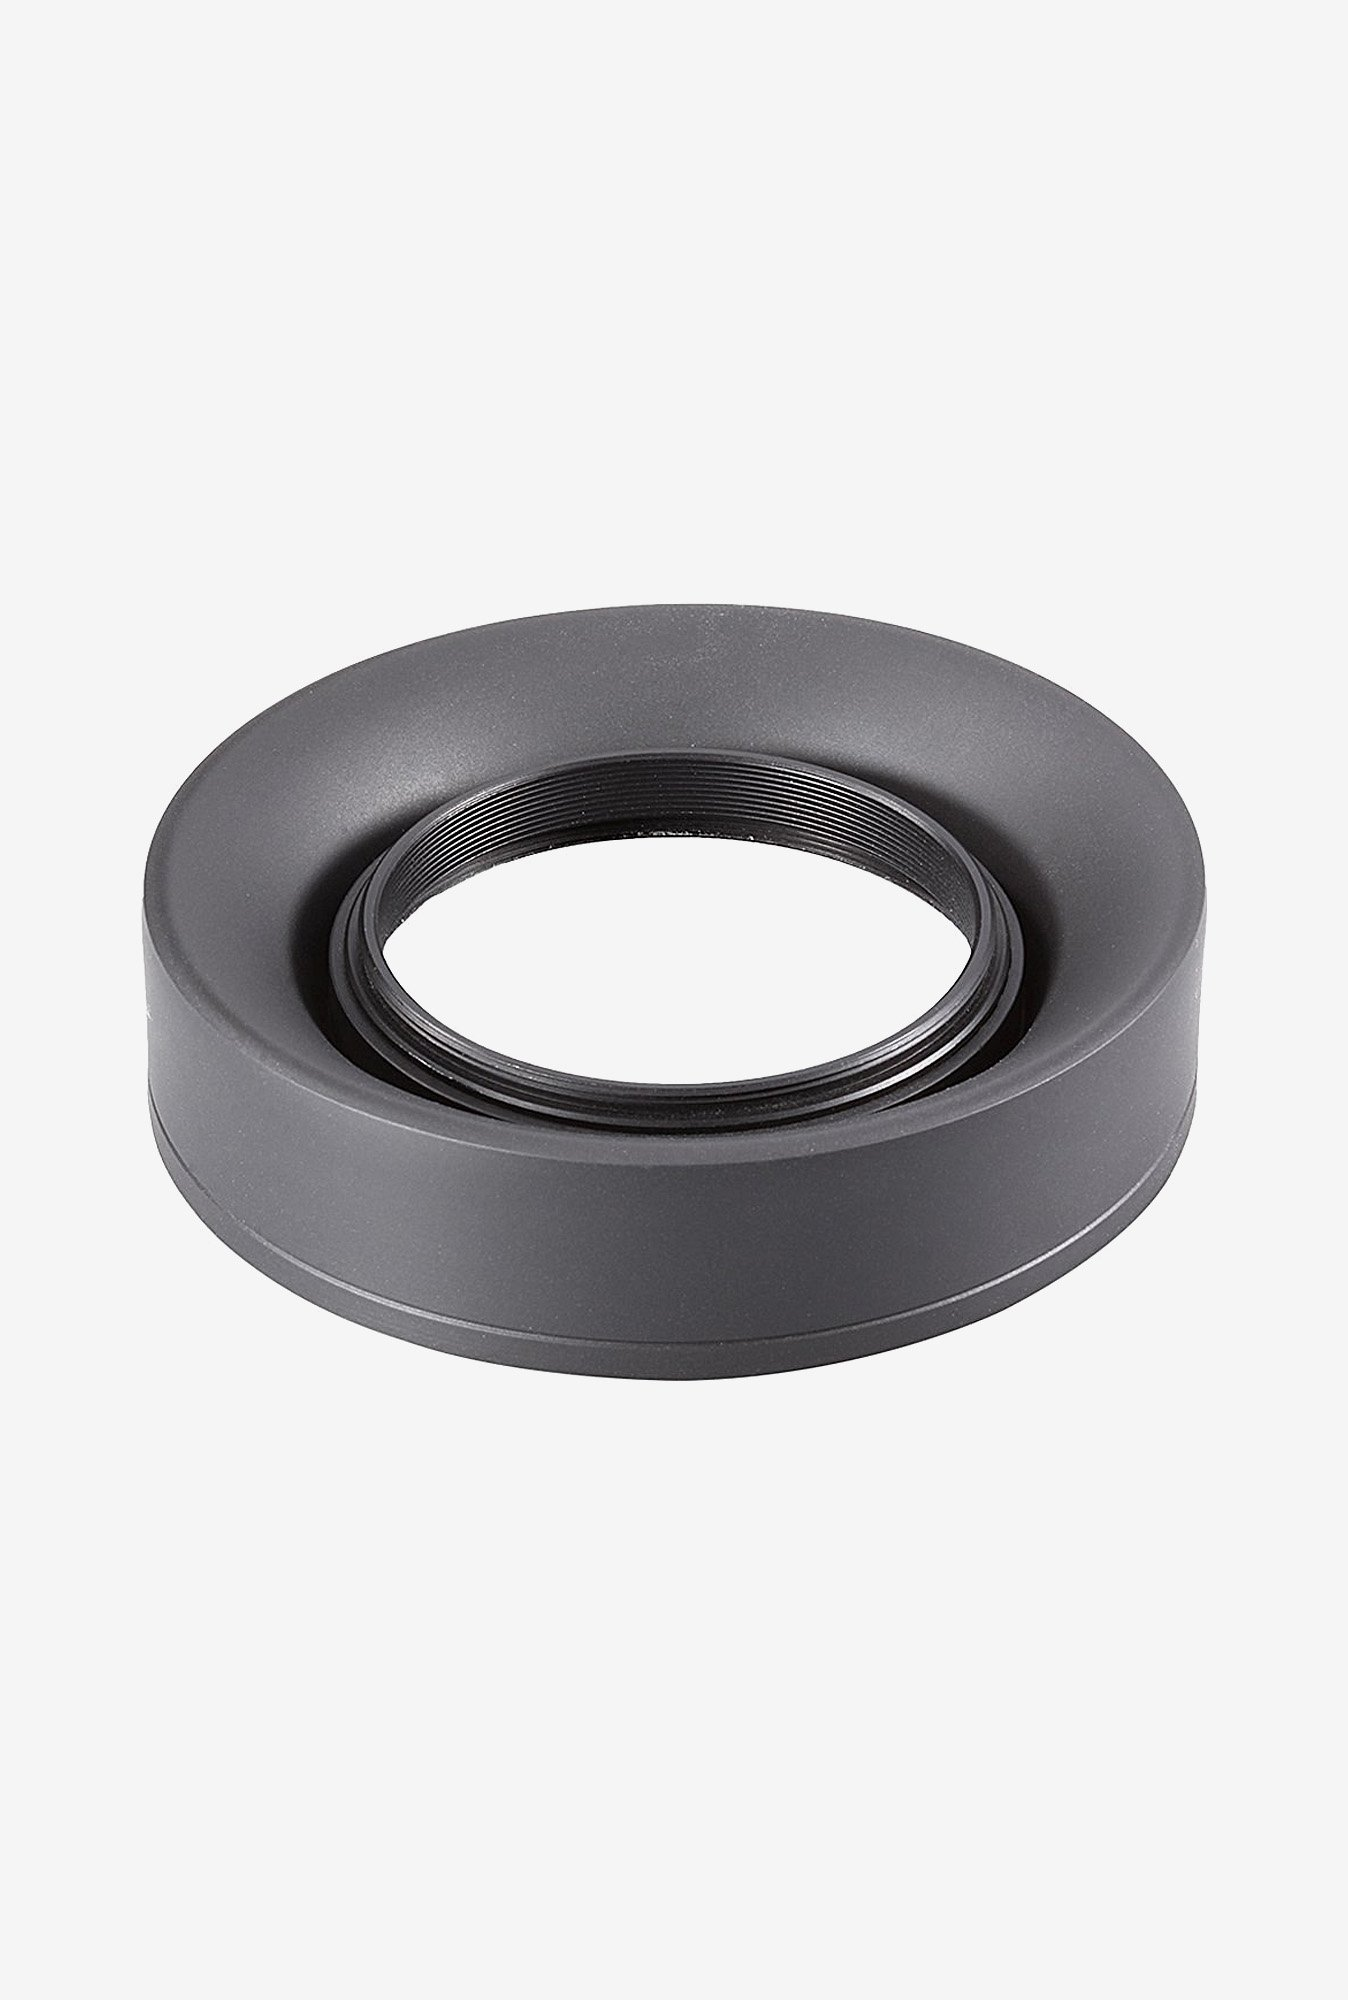 Neewer 10080197 62mm Collapsible Rubber Lens Hood (Black)